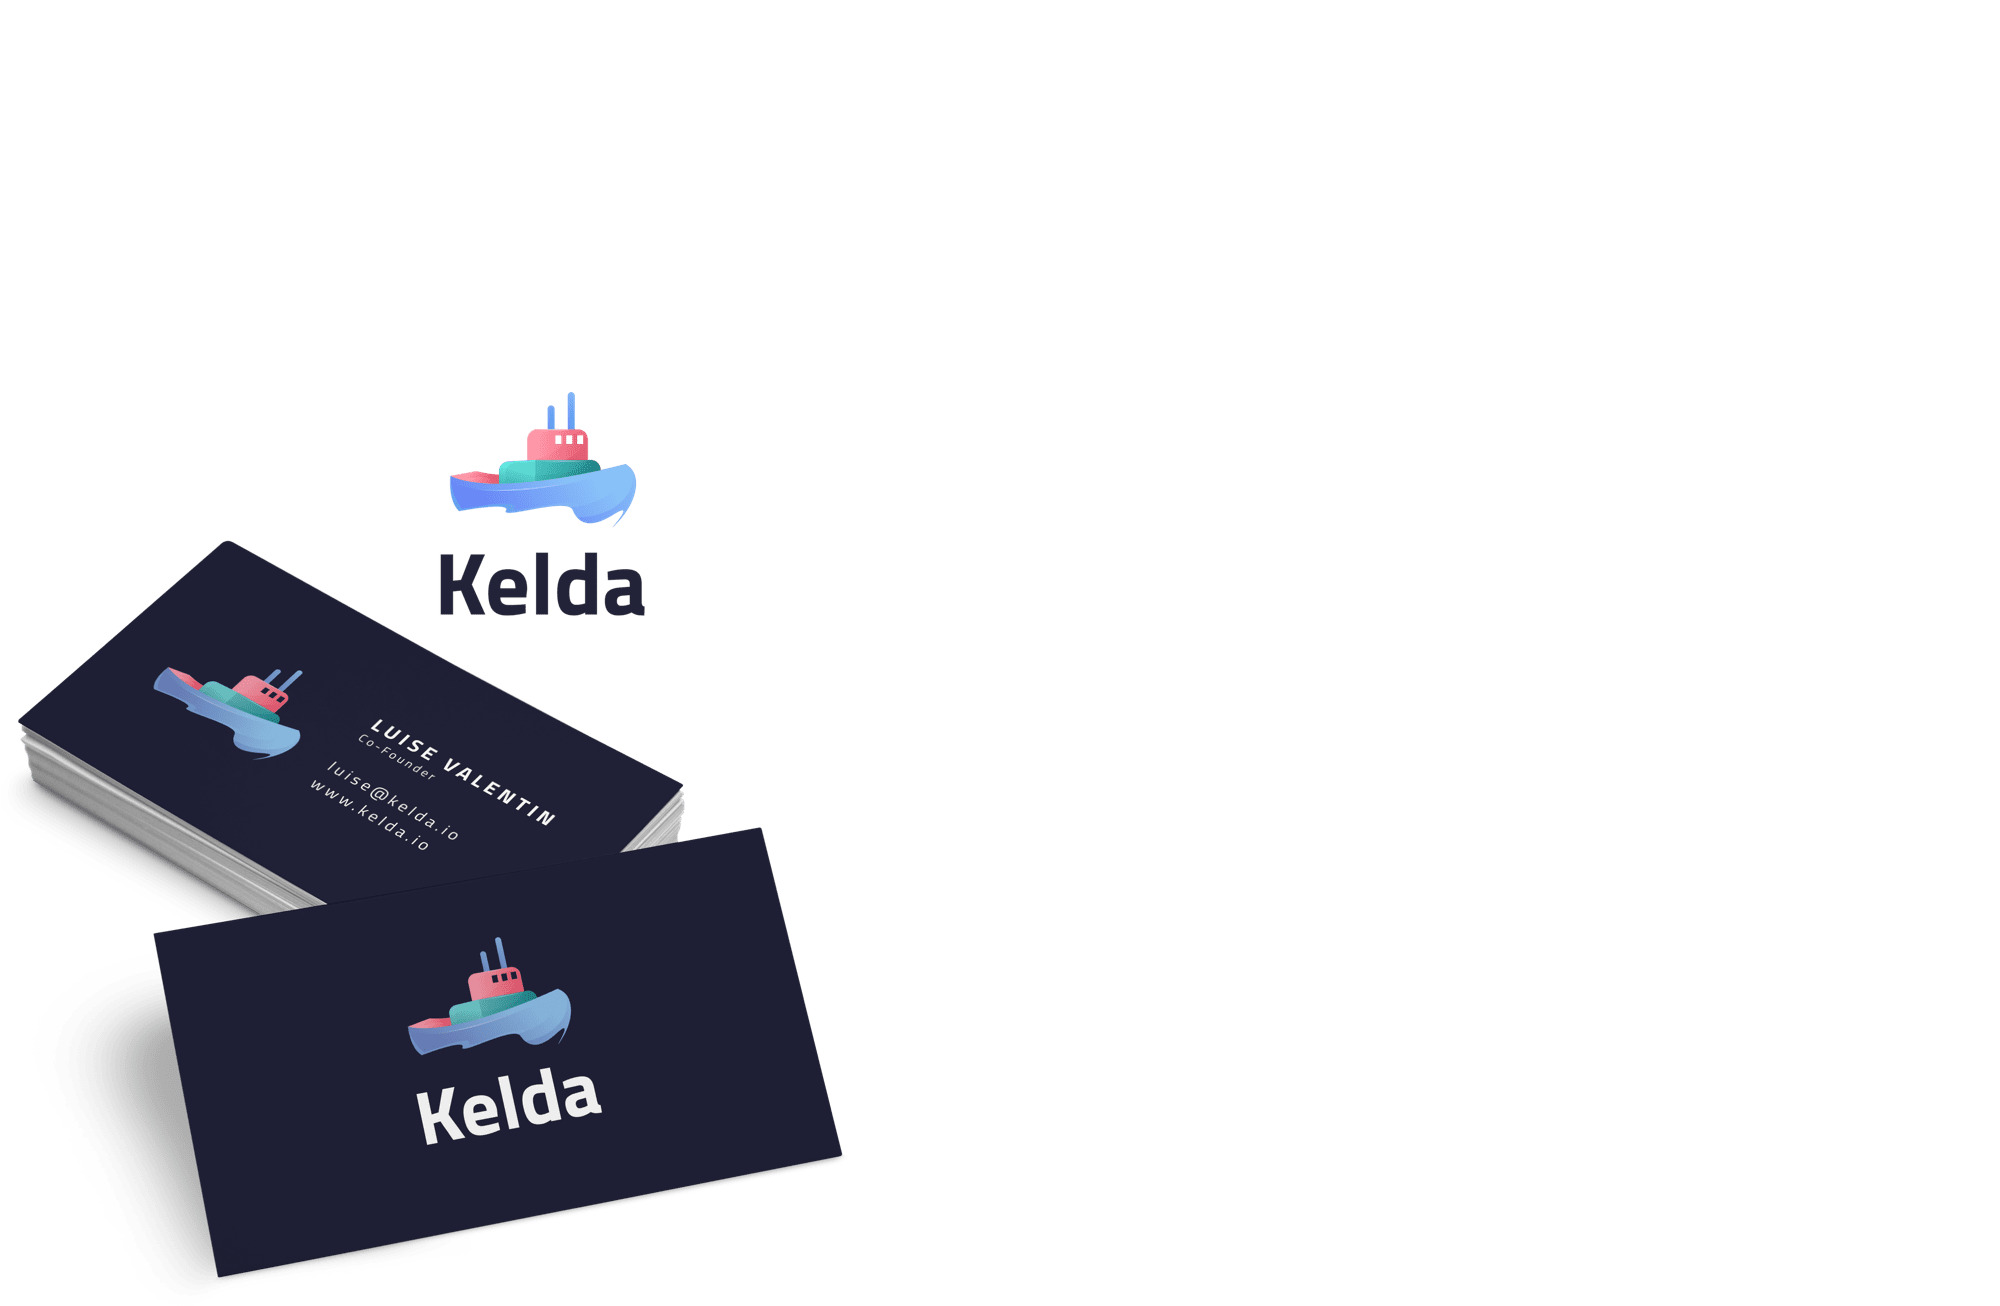 pink, blue and green tug boat logo on a dark blue business card